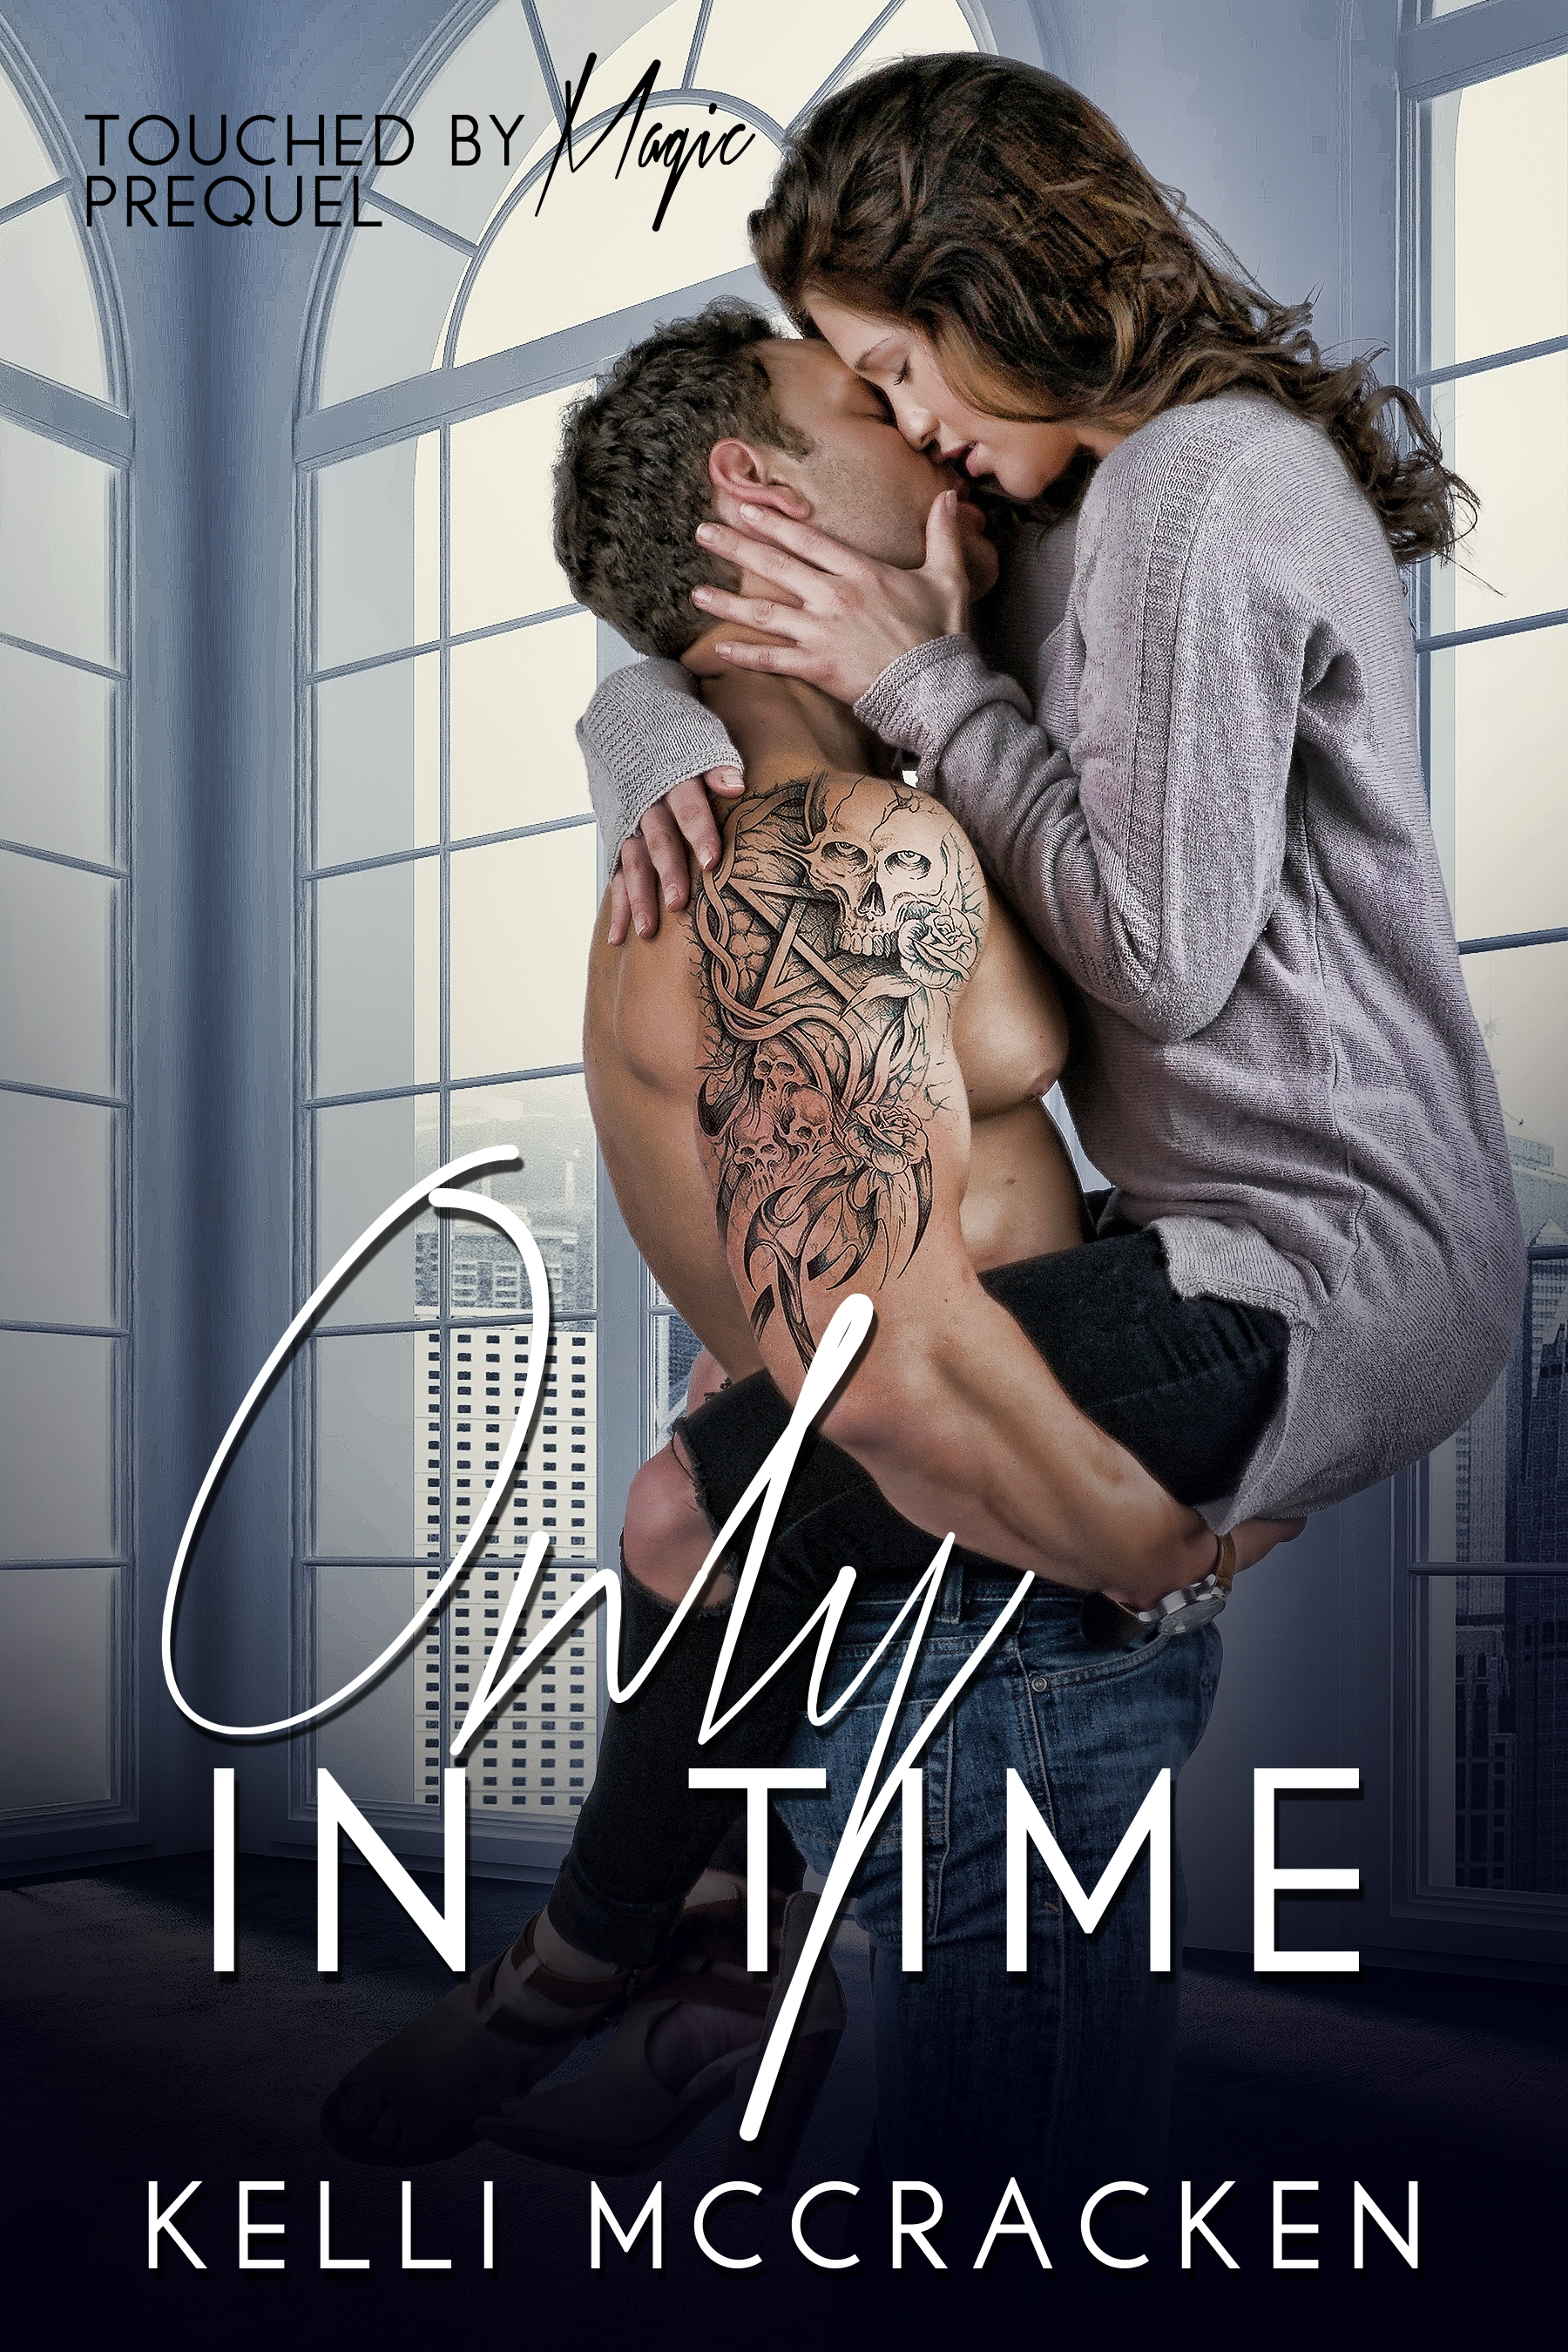 Only in Time (Touched by Magic Prequel)